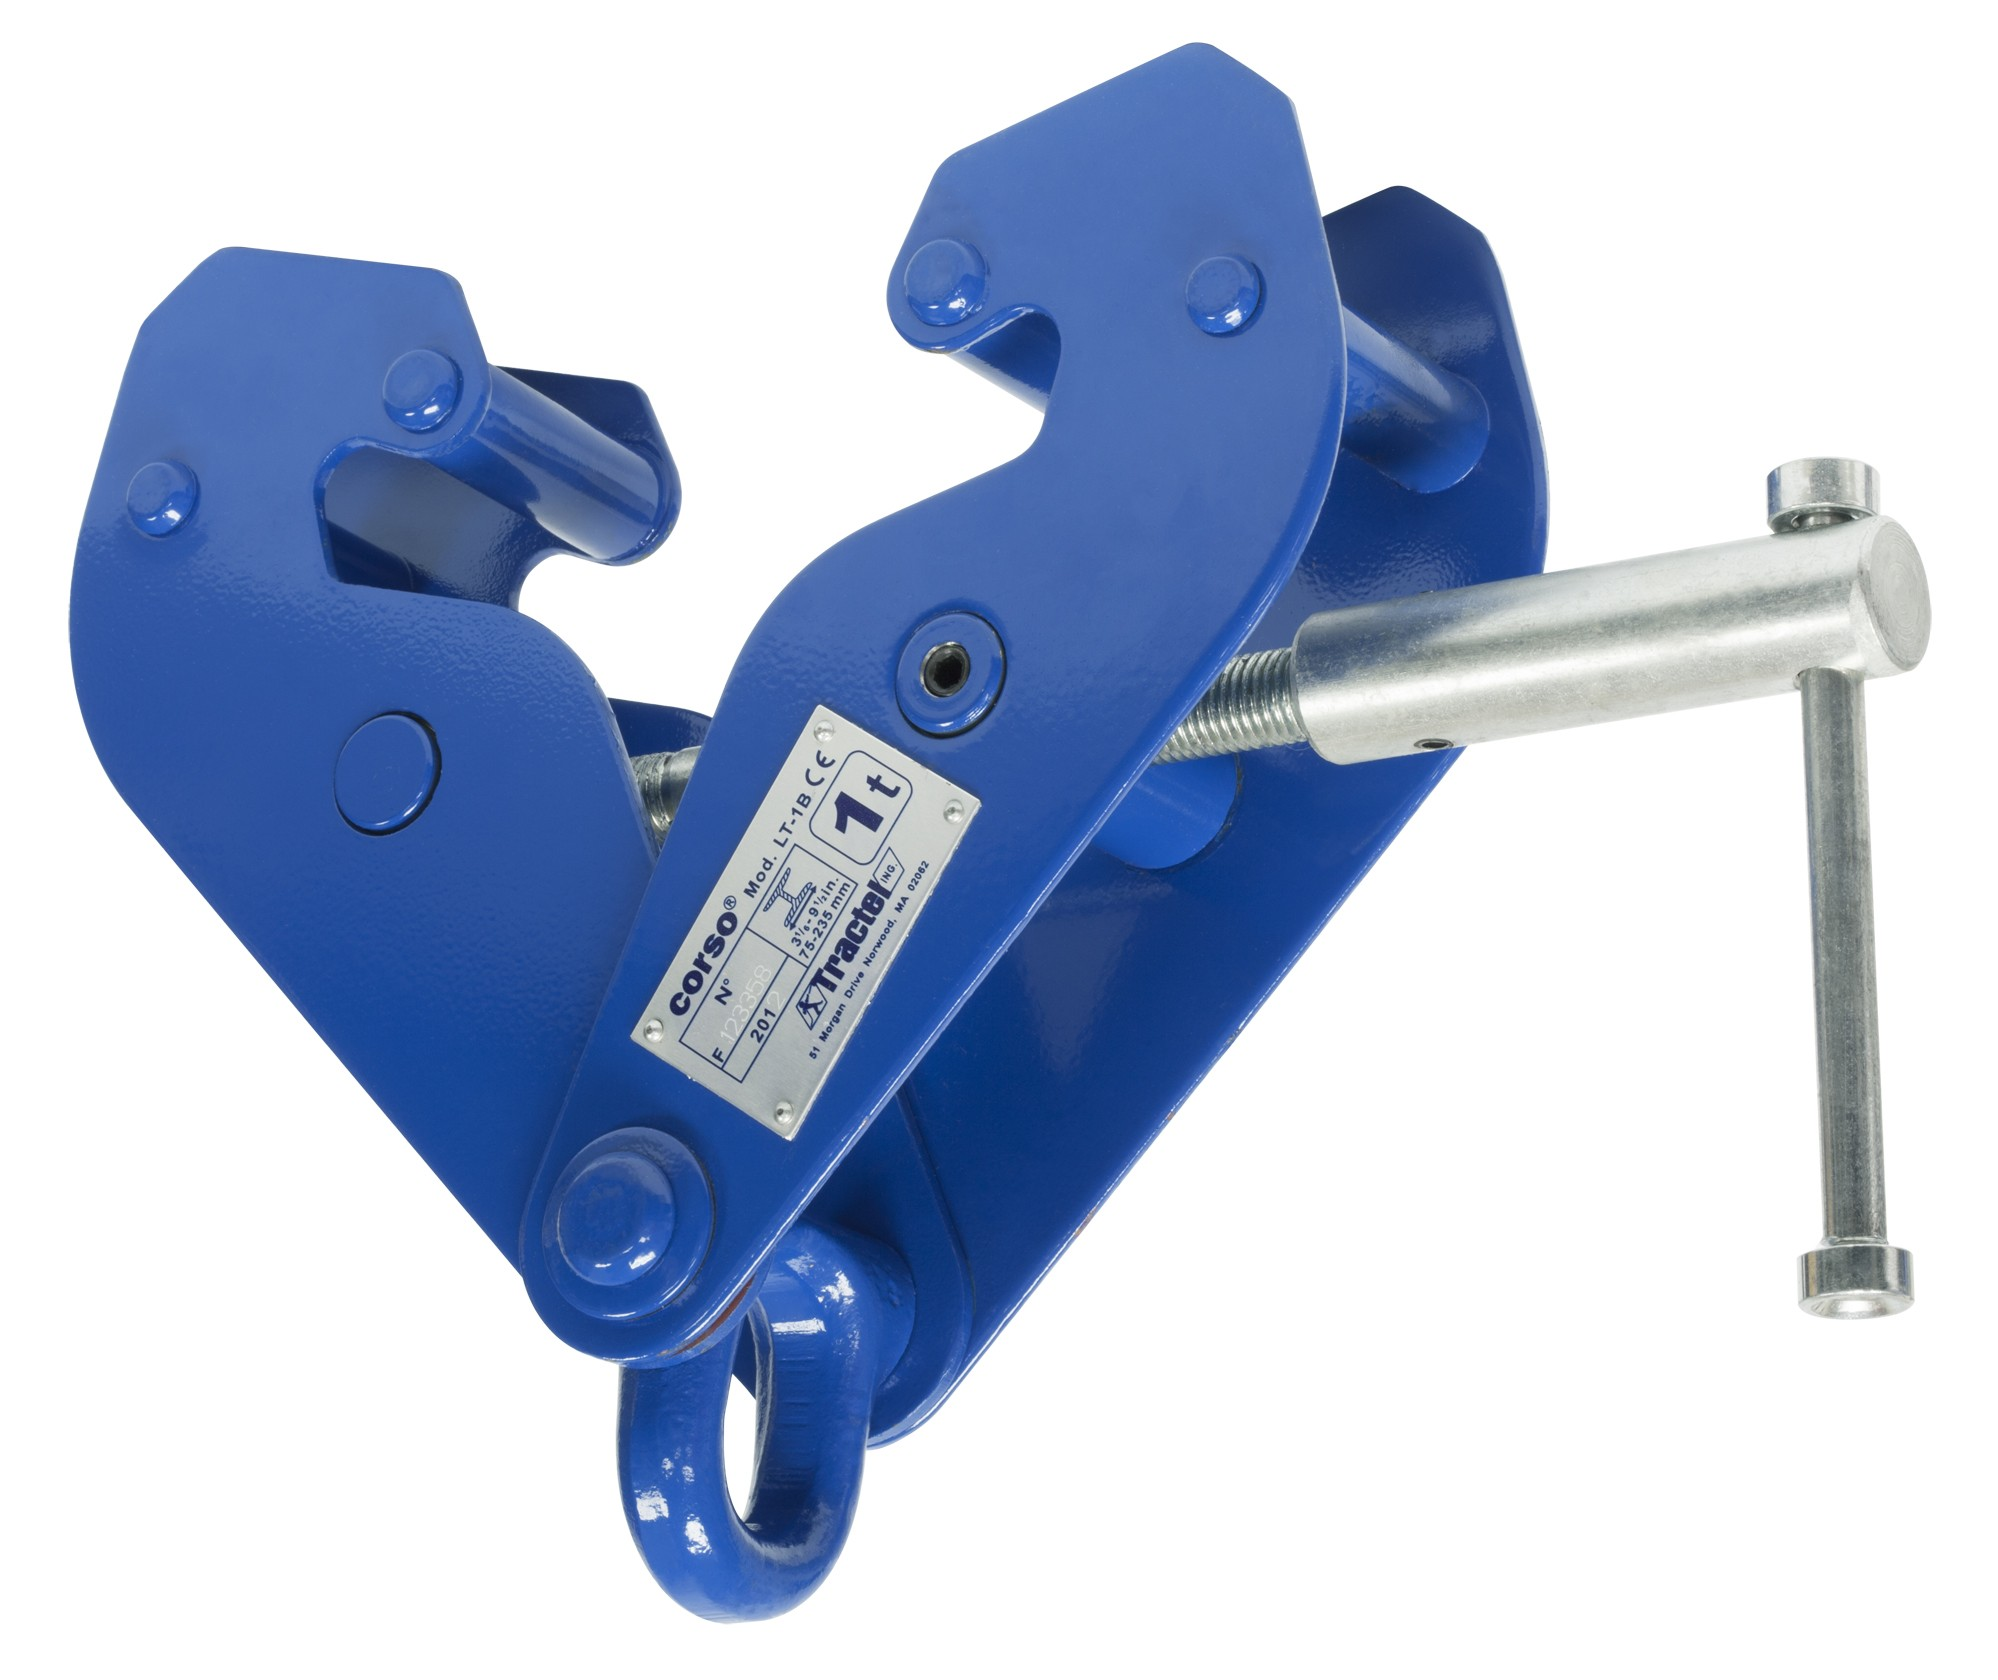 Tractel Beam Clamp 3 Ton Beam Clamp W Lifting Eye Cc07029